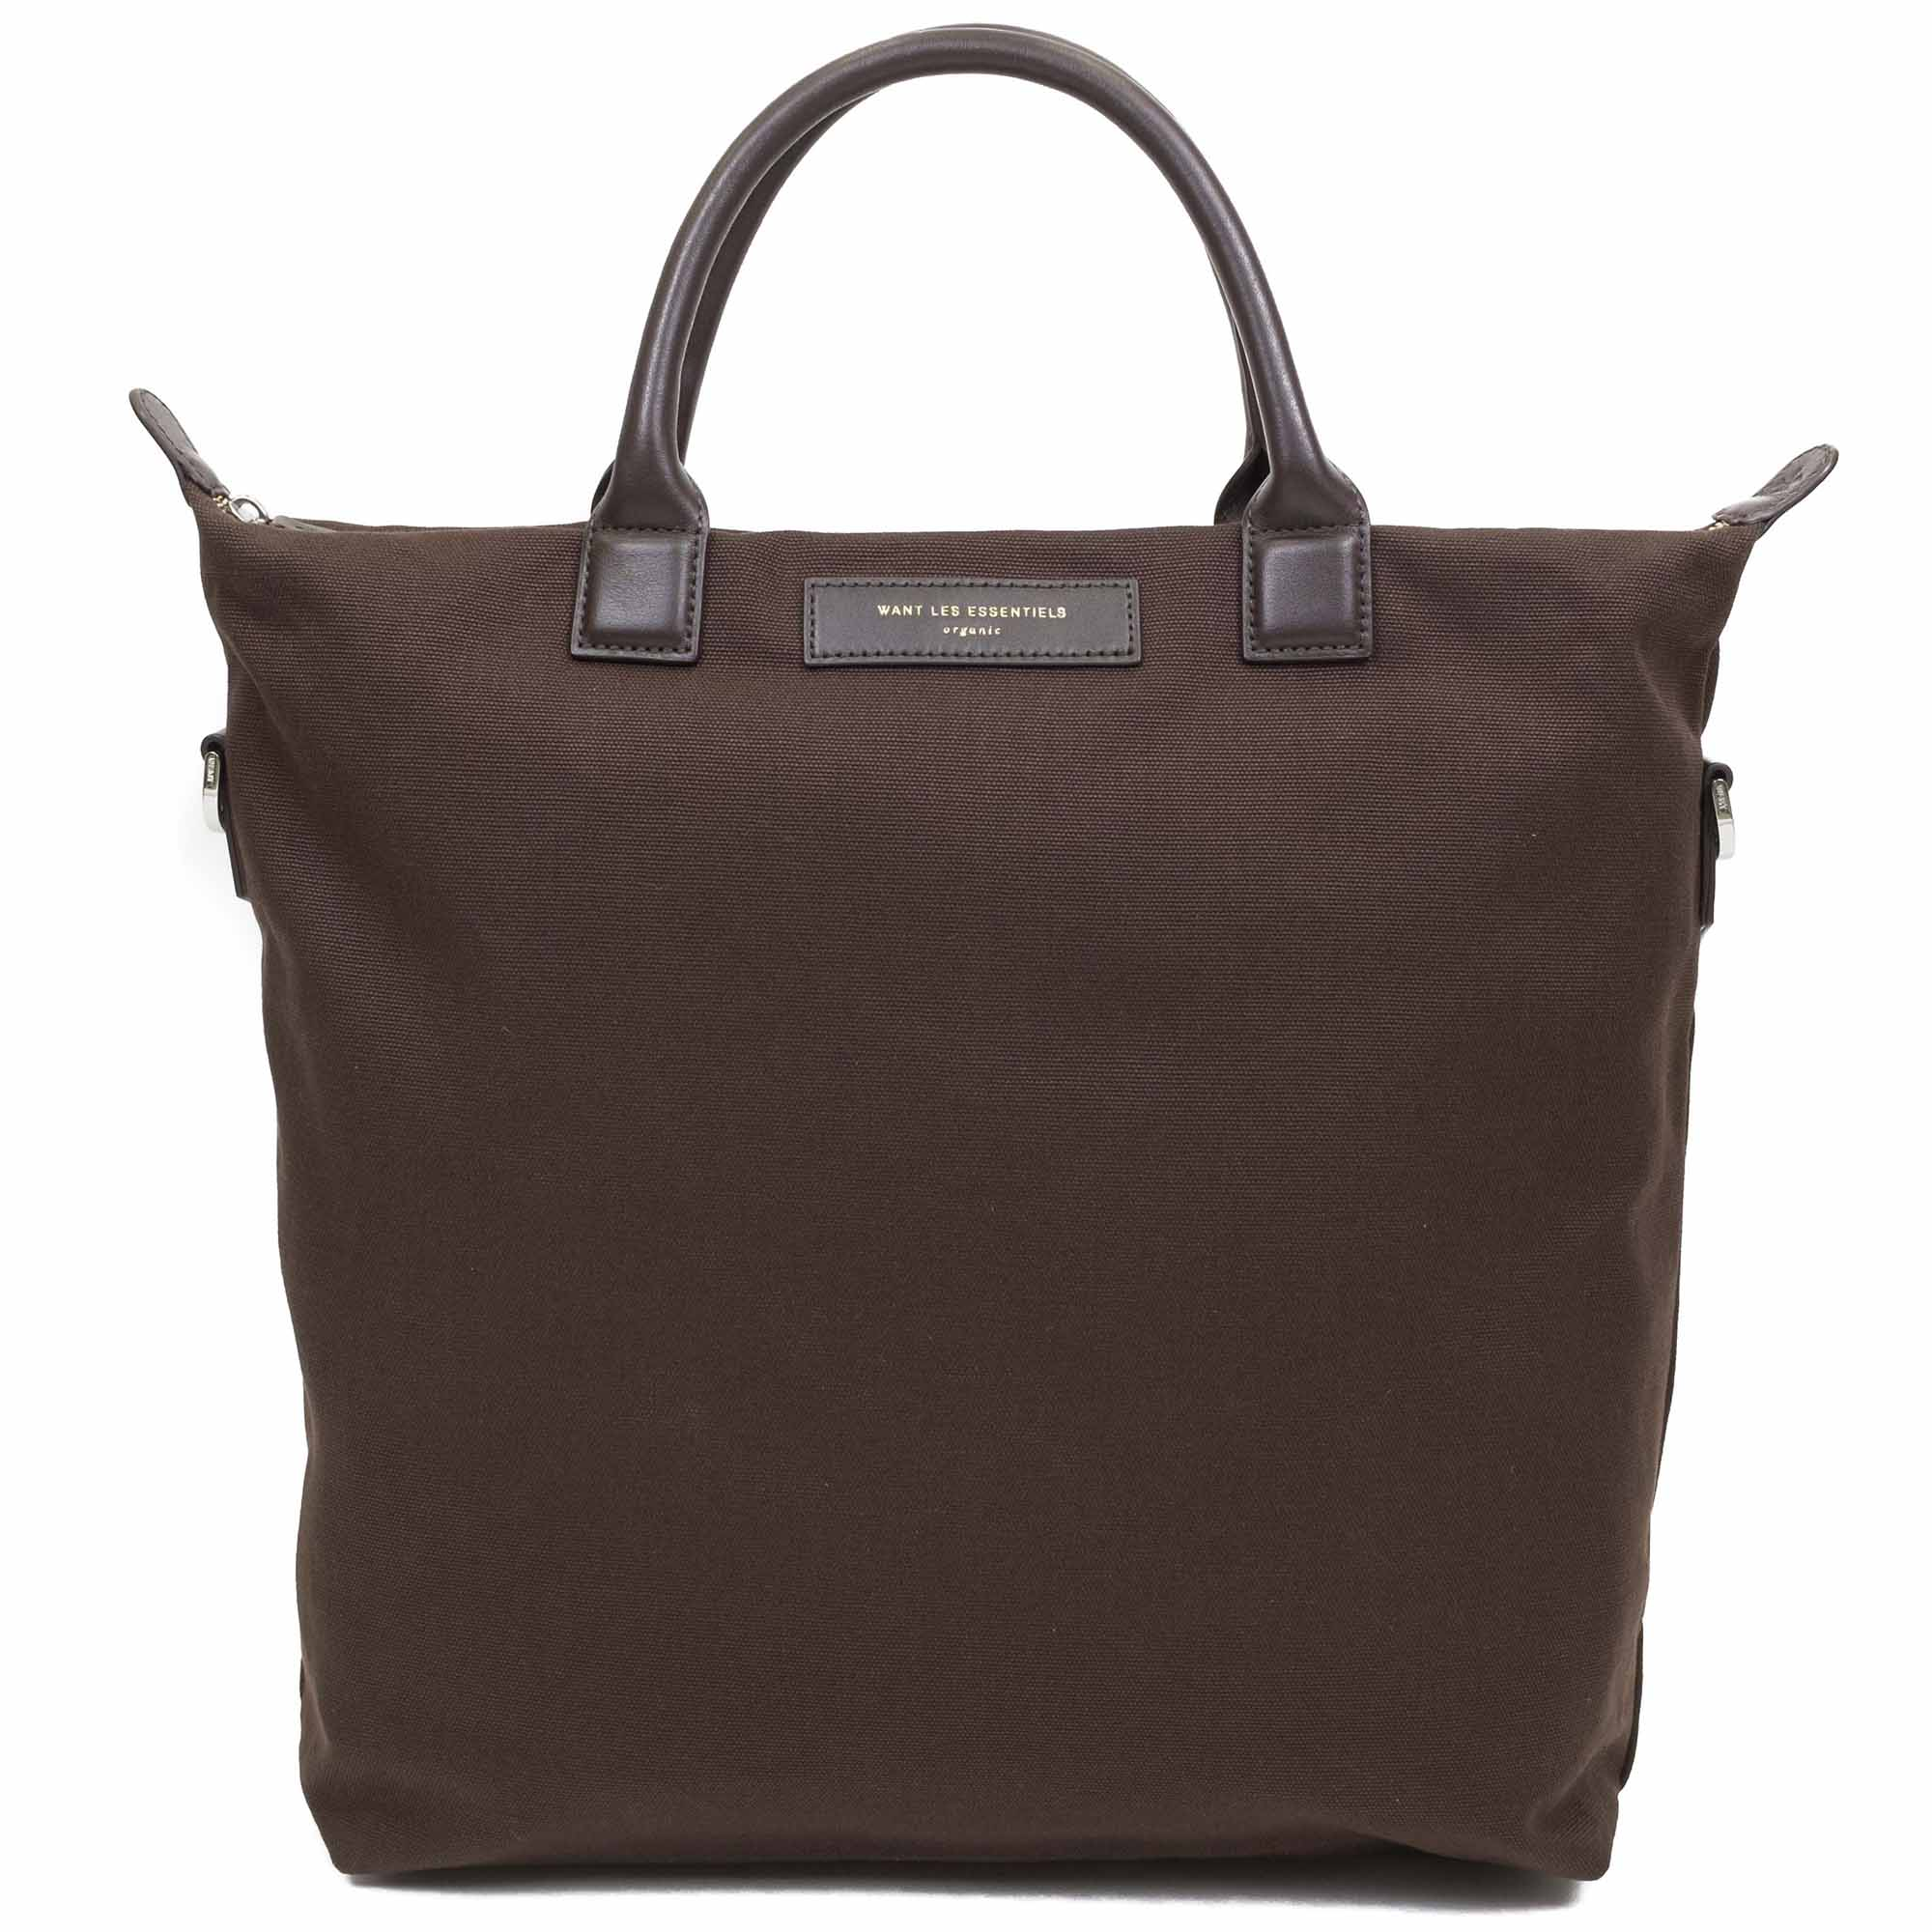 WANT Les Essentiels OHare Shopper Tote - Brown Canvas/Chestnut